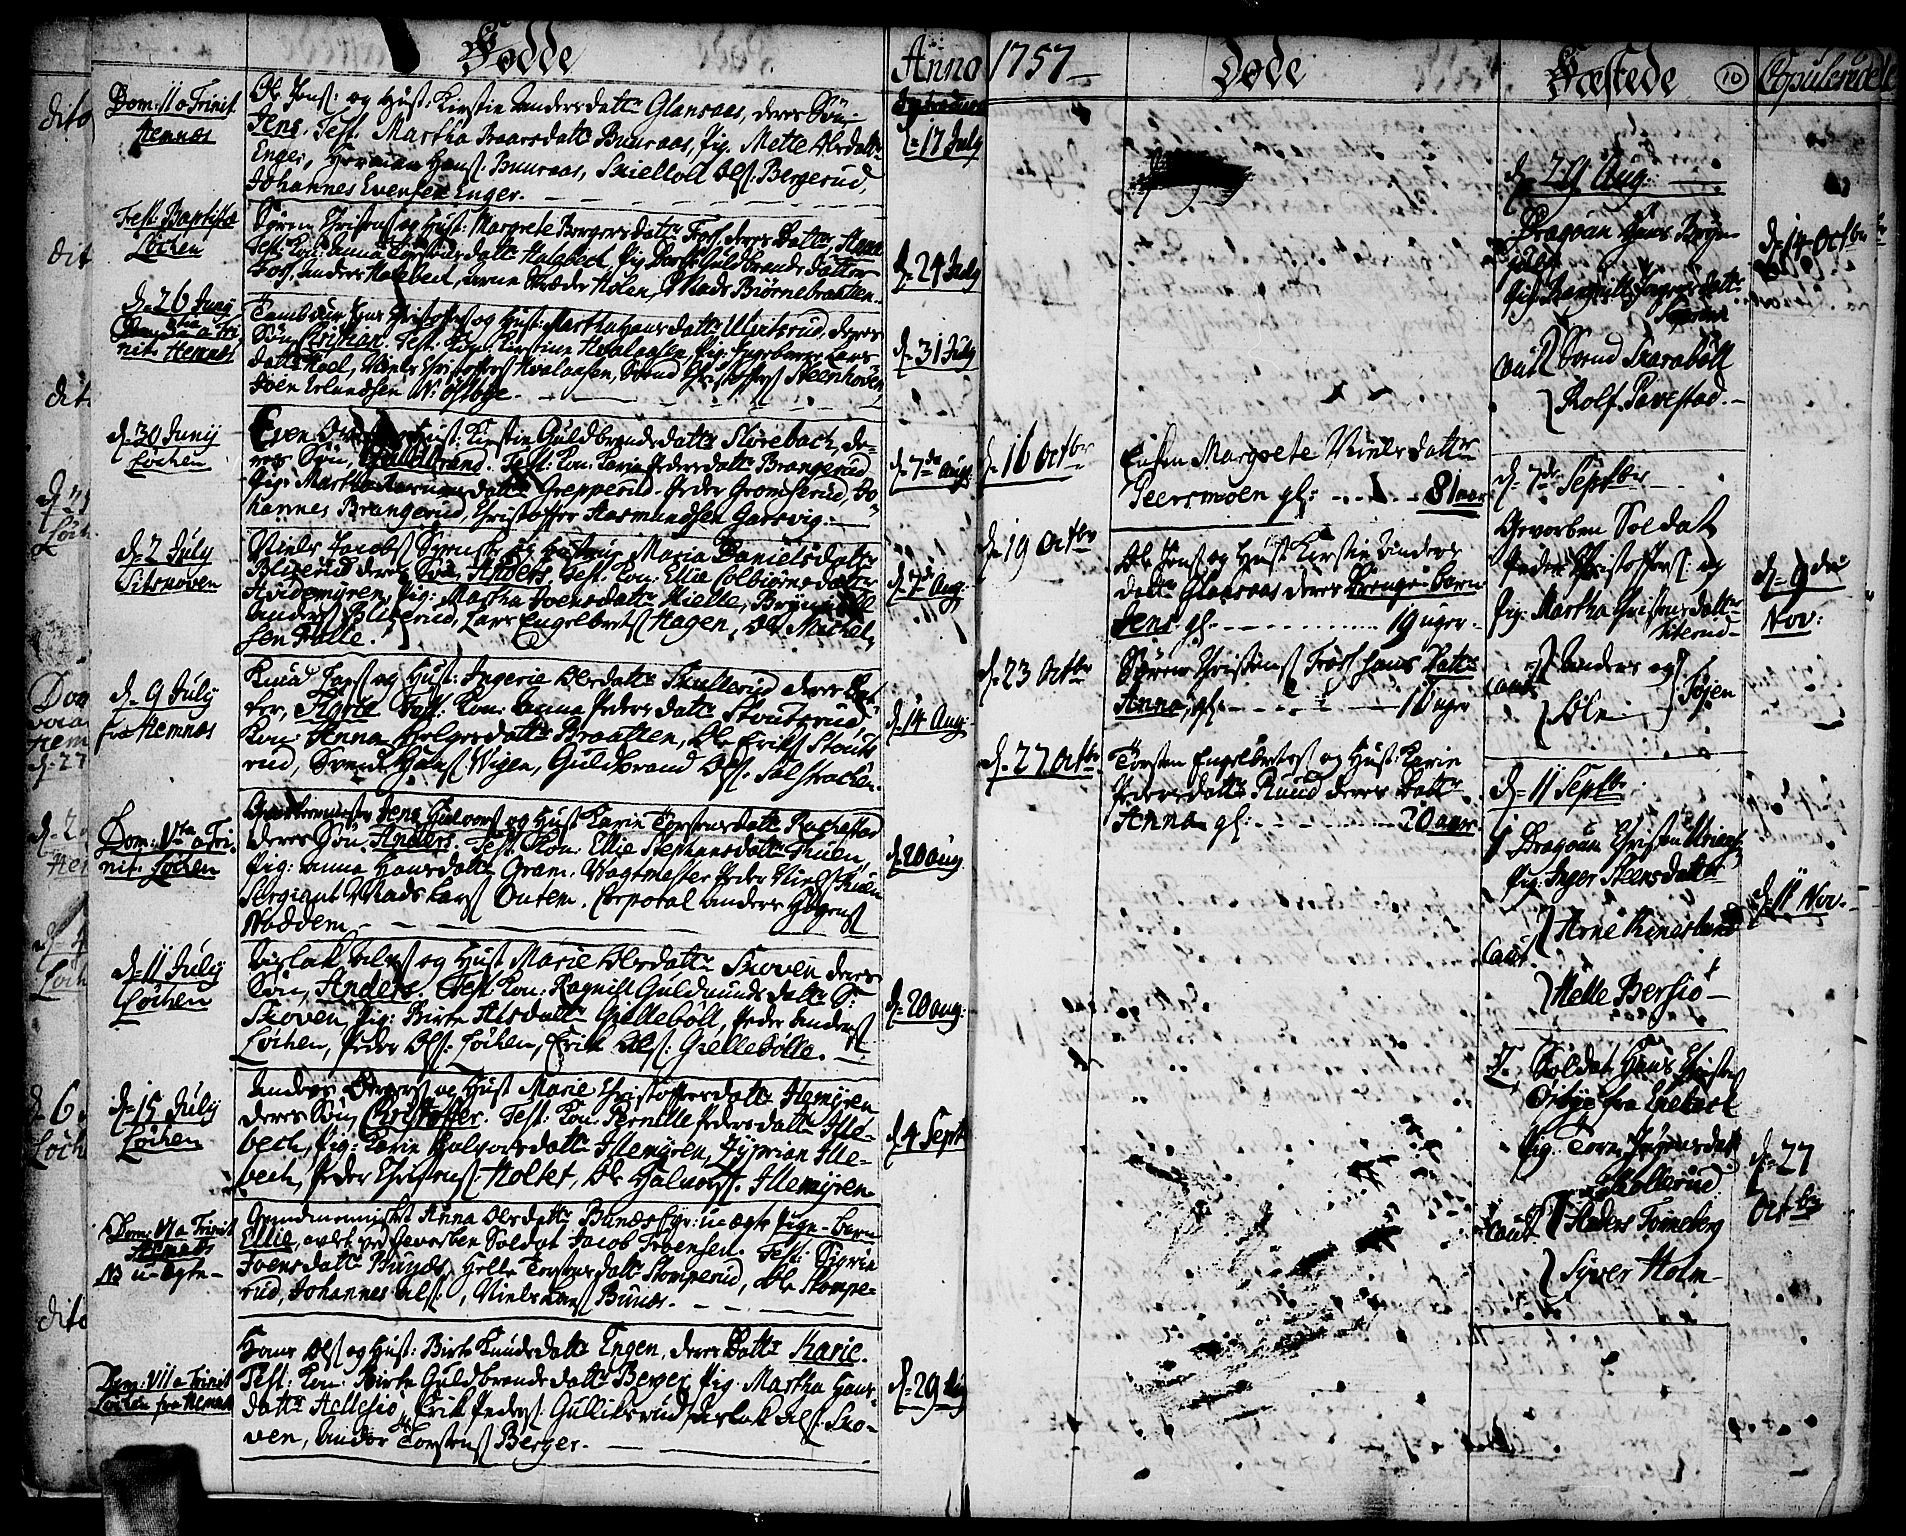 SAO, Høland prestekontor Kirkebøker, F/Fa/L0004: Parish register (official) no. I 4, 1757-1780, p. 10